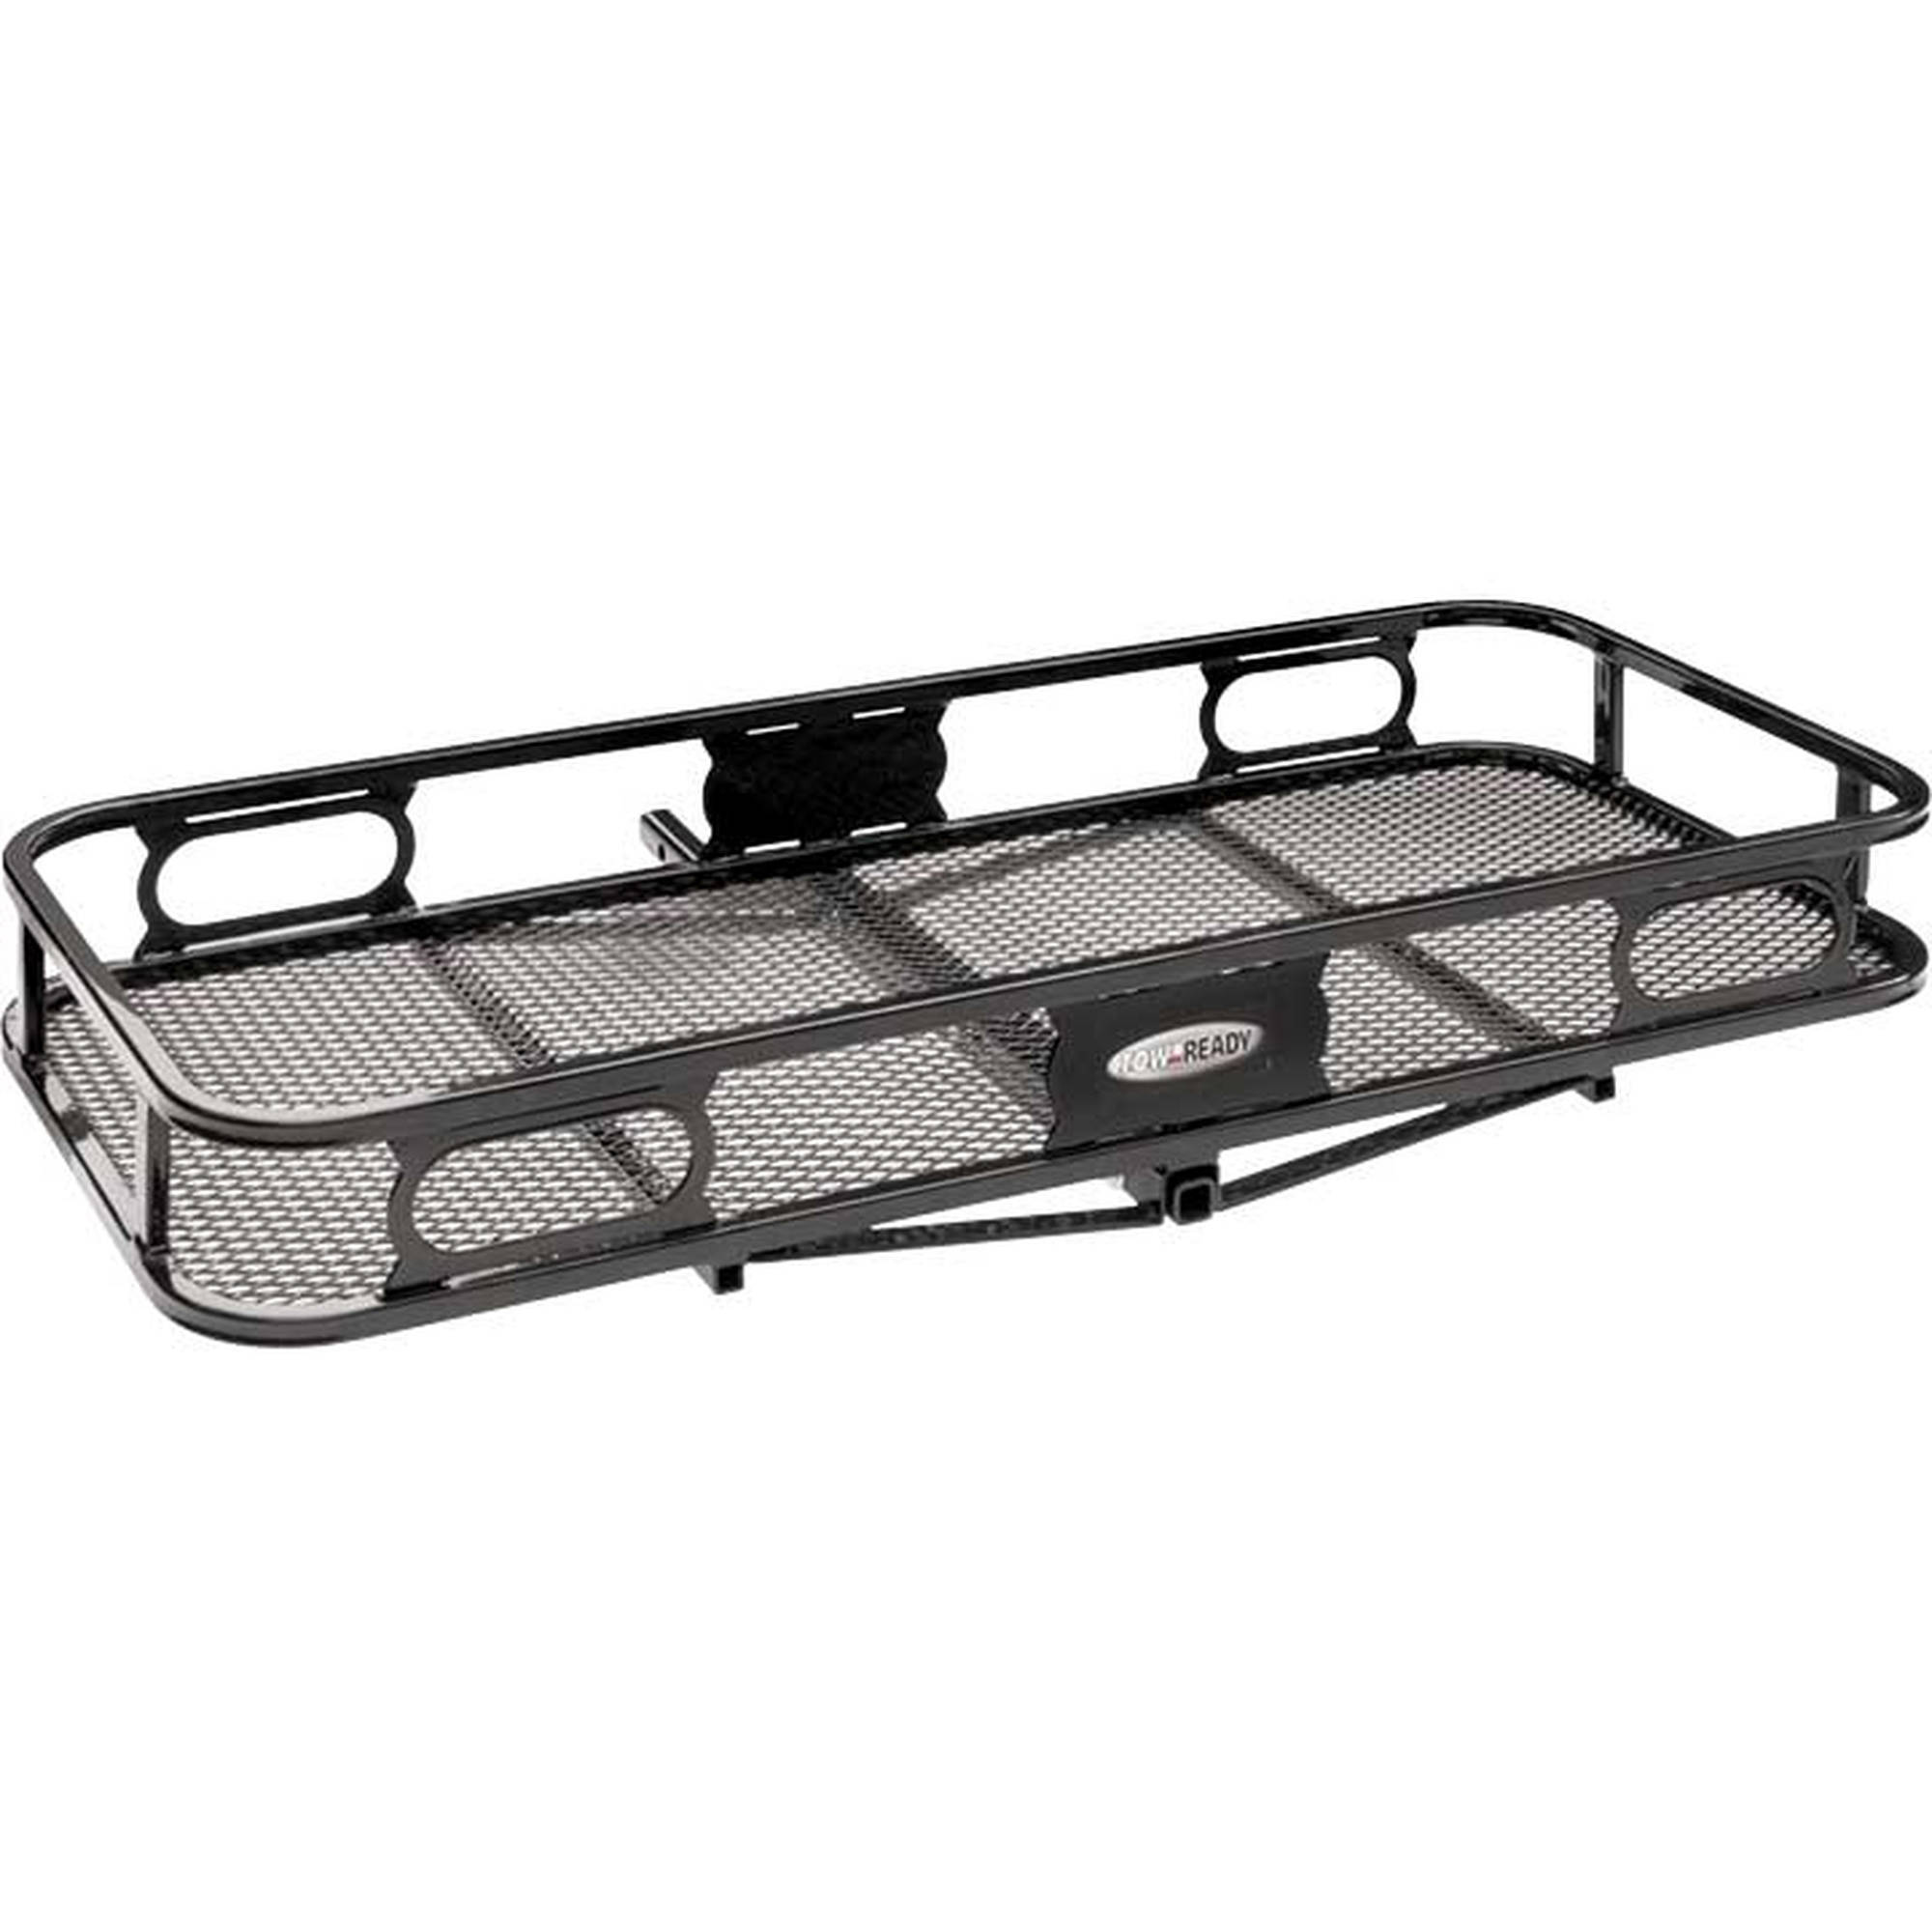 """49.5"""" x 21.5"""" Cls II Cargo Carrier with 6"""" Side Rails(Assembly Required) Replacement Auto Part, Easy to Install"""